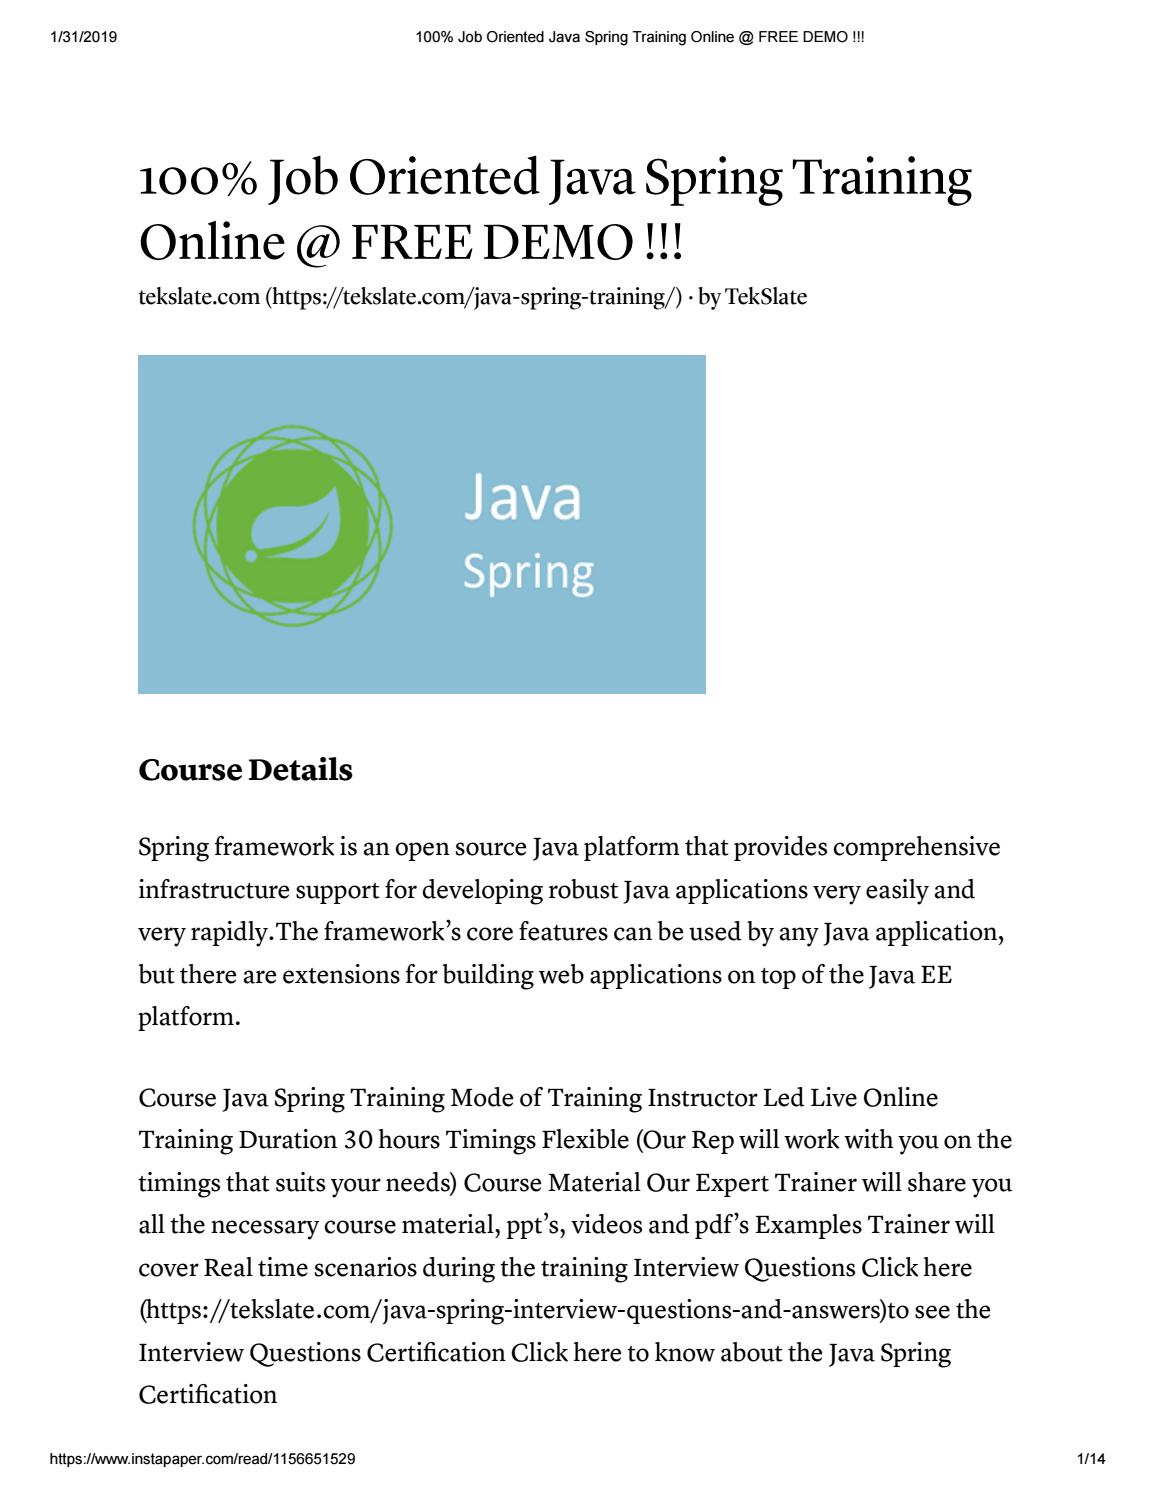 Java Spring Training in India & USA - FREE DEMO by